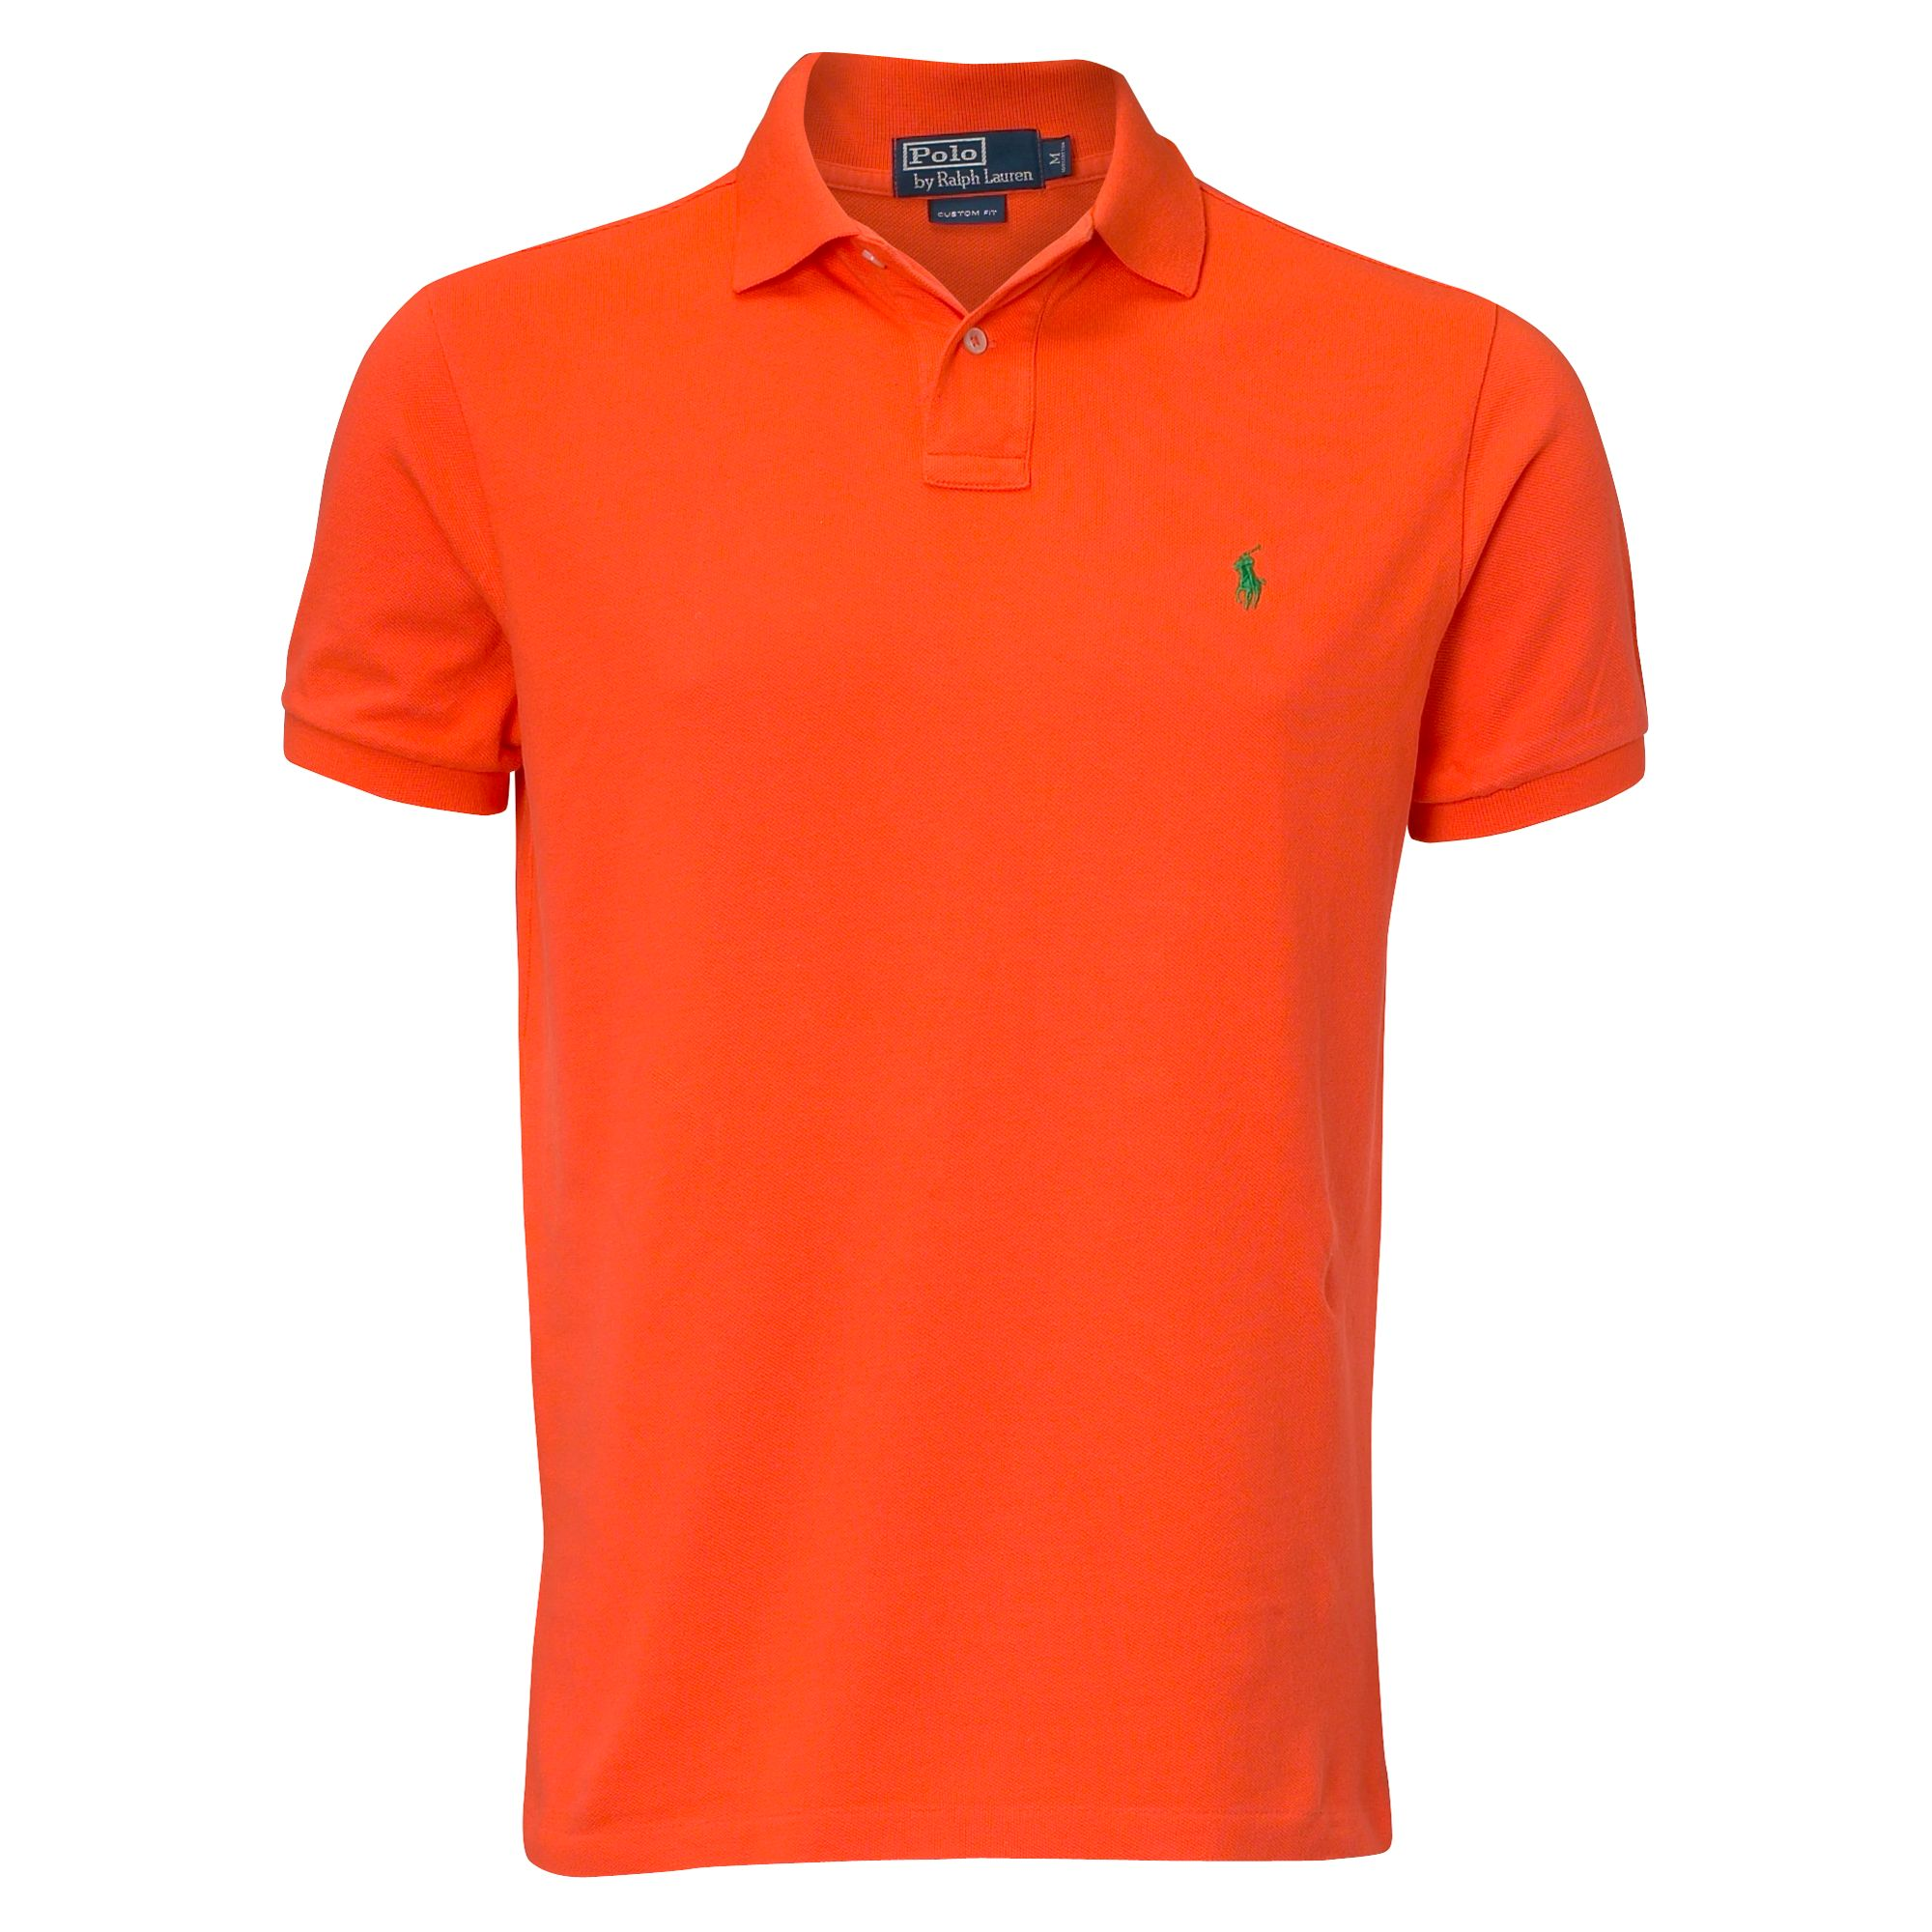 Polo ralph lauren custom fit mesh polo shirt in orange for for Ralph lauren custom fit mesh polo shirt